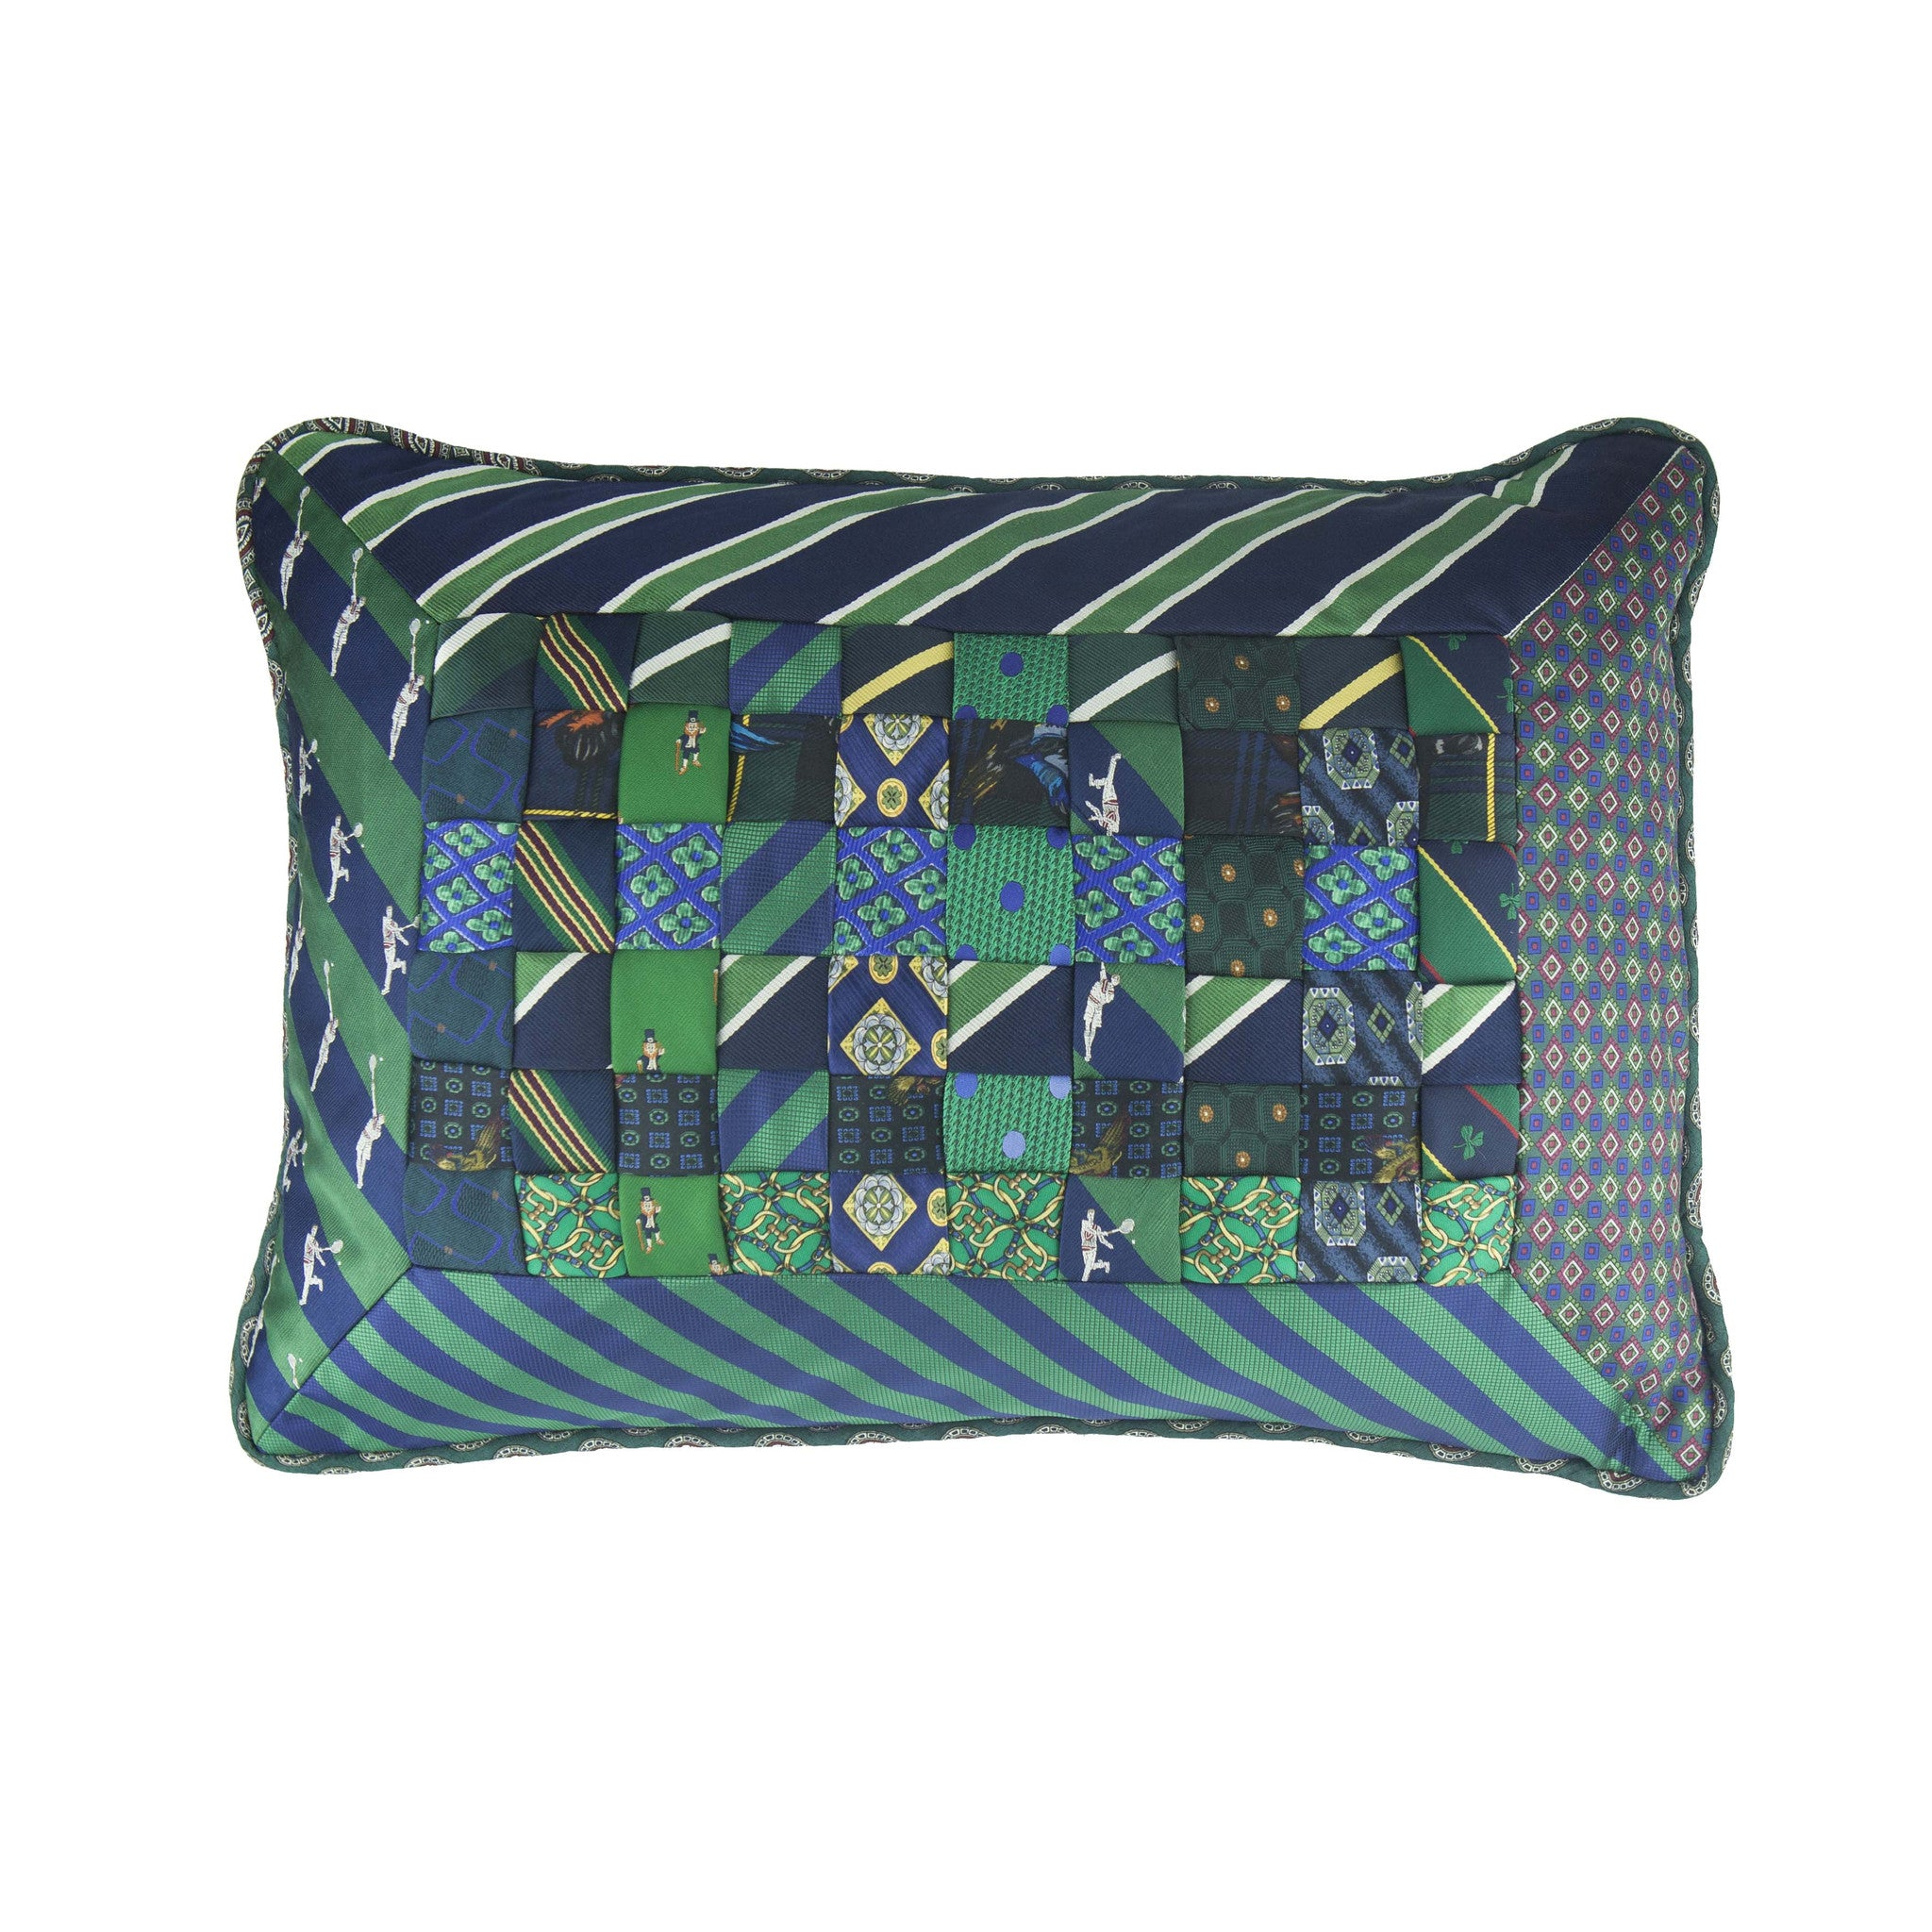 Elegant Interiors-Kelly Green/Navy Blue